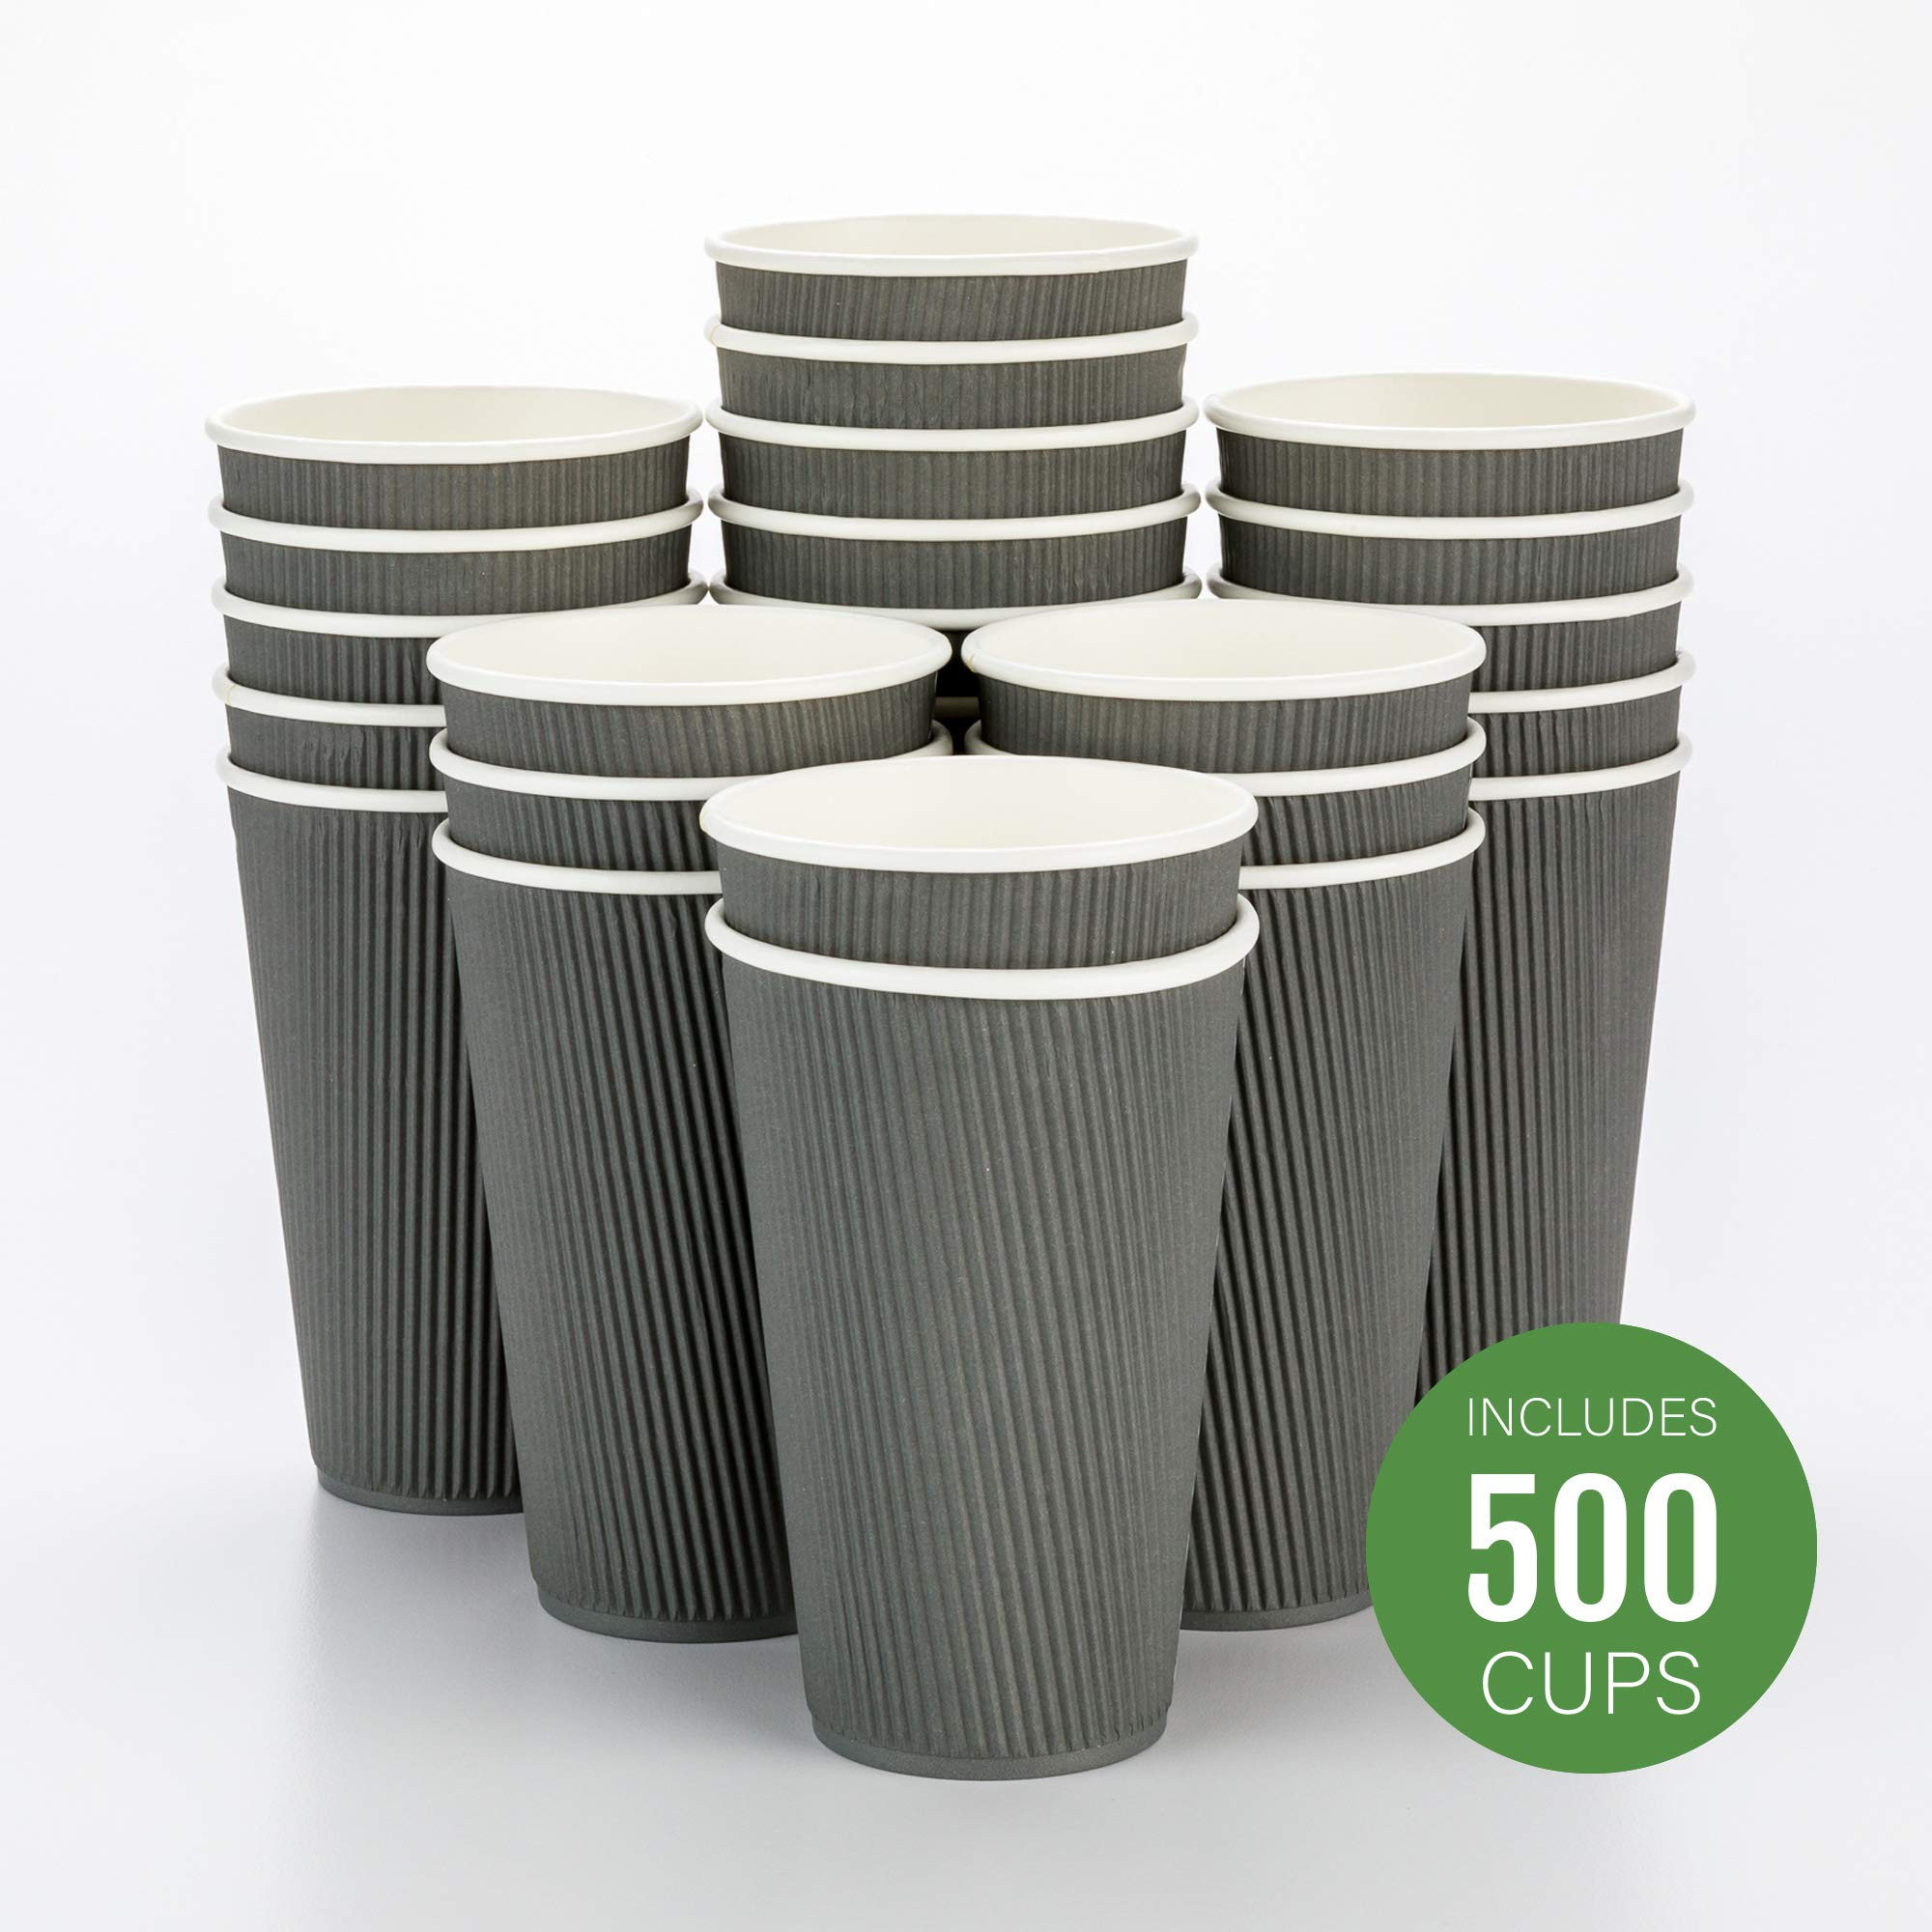 500-CT Disposable Gray 16-OZ Hot Beverage Cups with Ripple Wall Design: No Need for Sleeves - Perfect for Cafes - Eco-Friendly Recyclable Paper - Insulated - Wholesale Takeout Coffee Cup